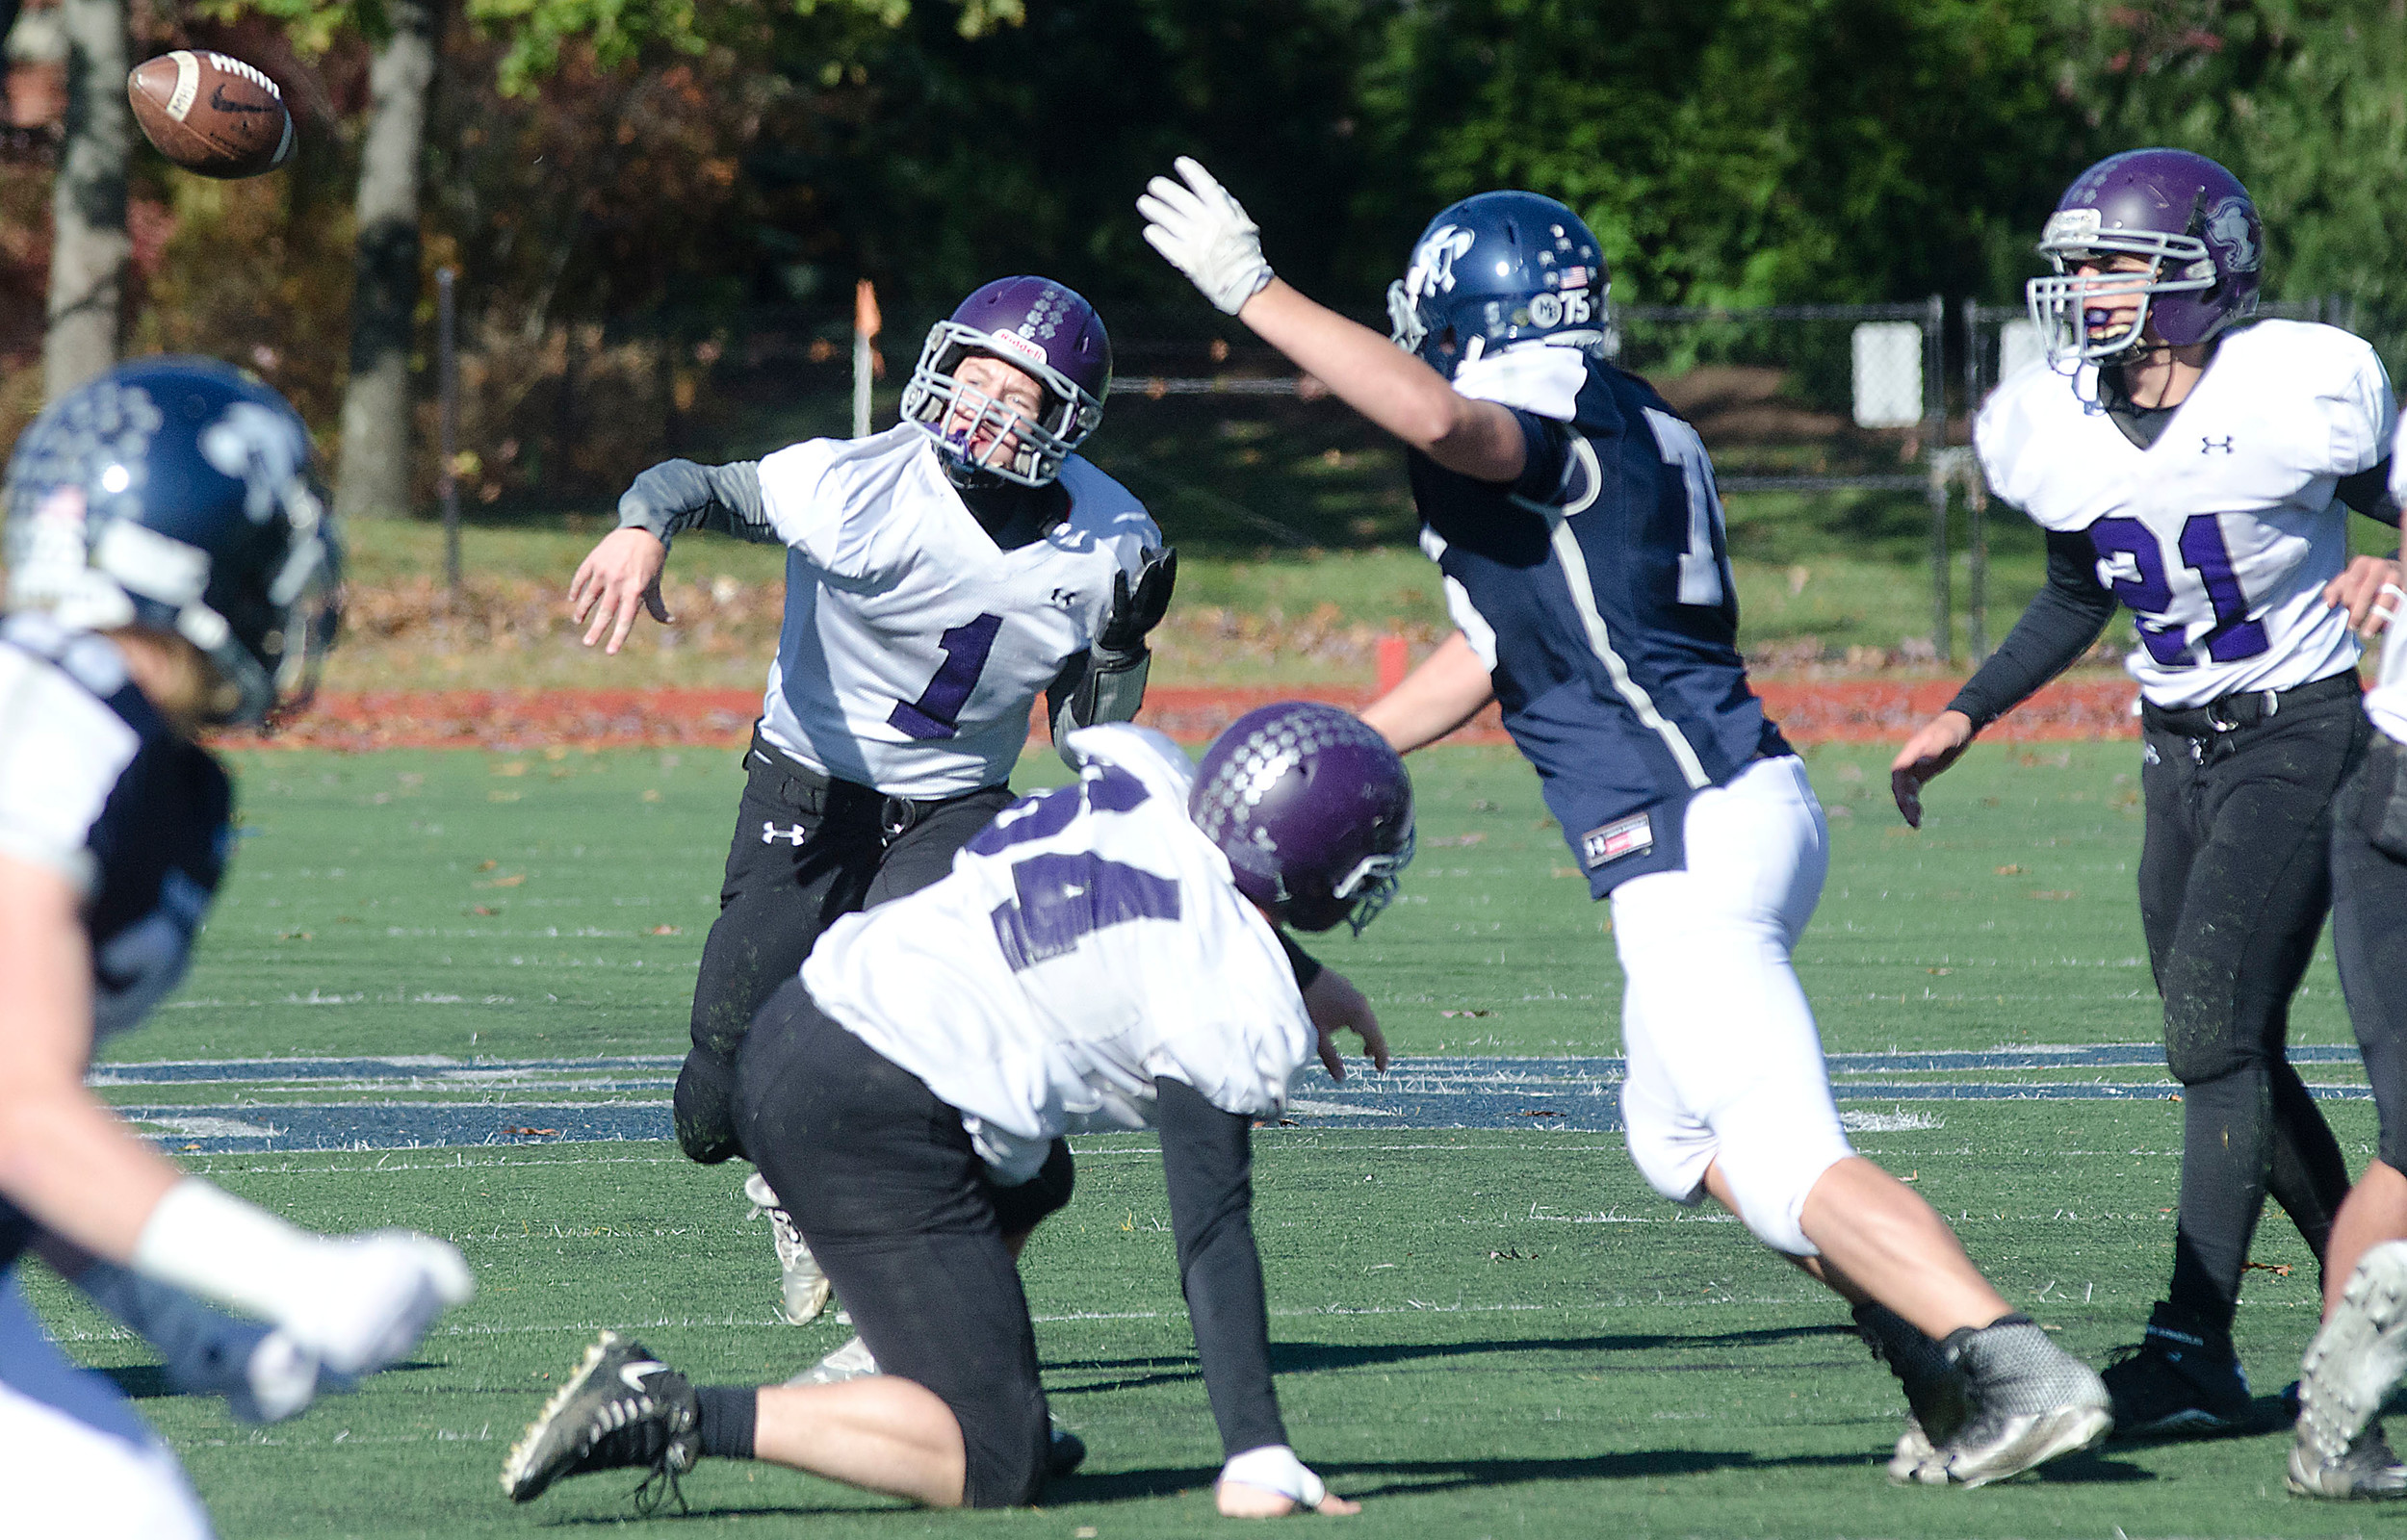 Matt DeFelice throws a pass to Max Moskala during a scoring drive in the first half.